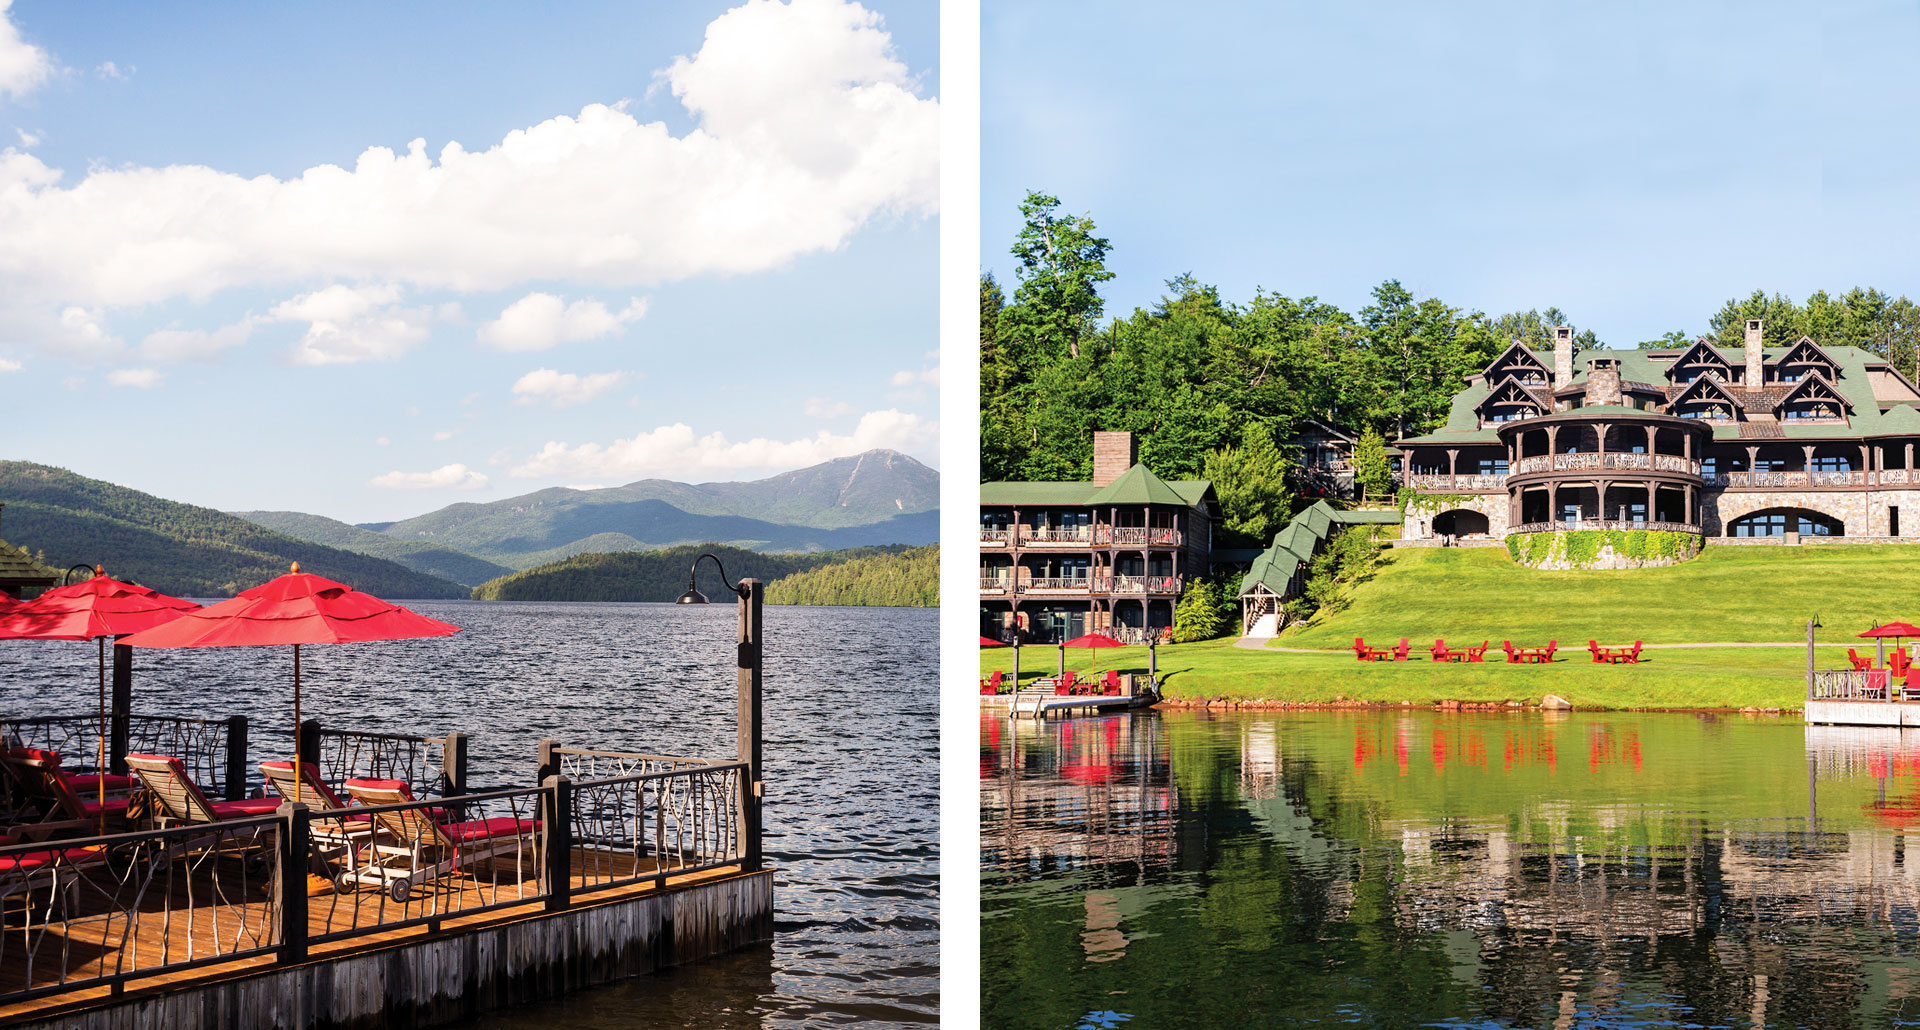 LAKE PLACID LODGE - boutique hotel in Lake Placid, New York